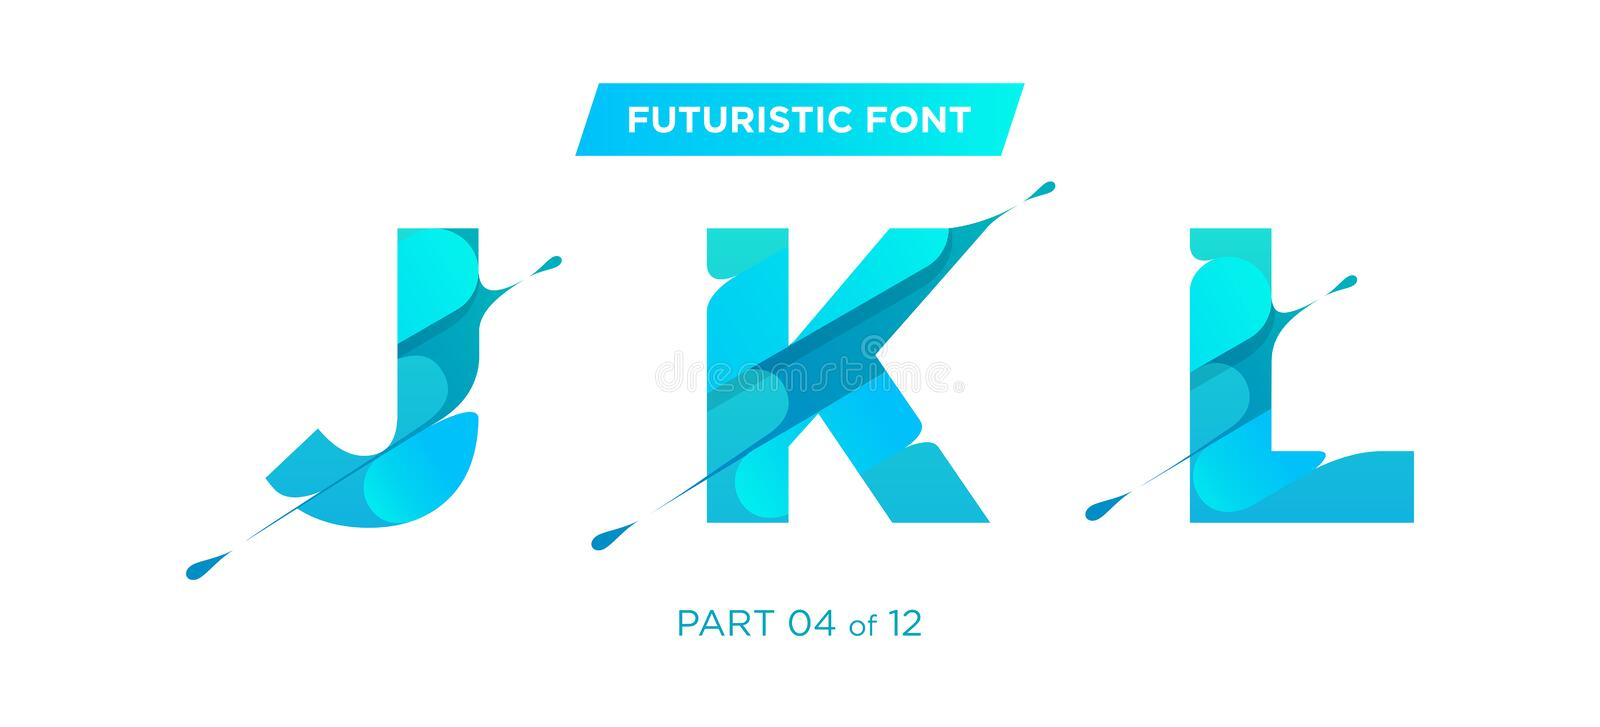 Vector Bold Geometric Rounded Font Design. Ultra Modern Style. stock illustration